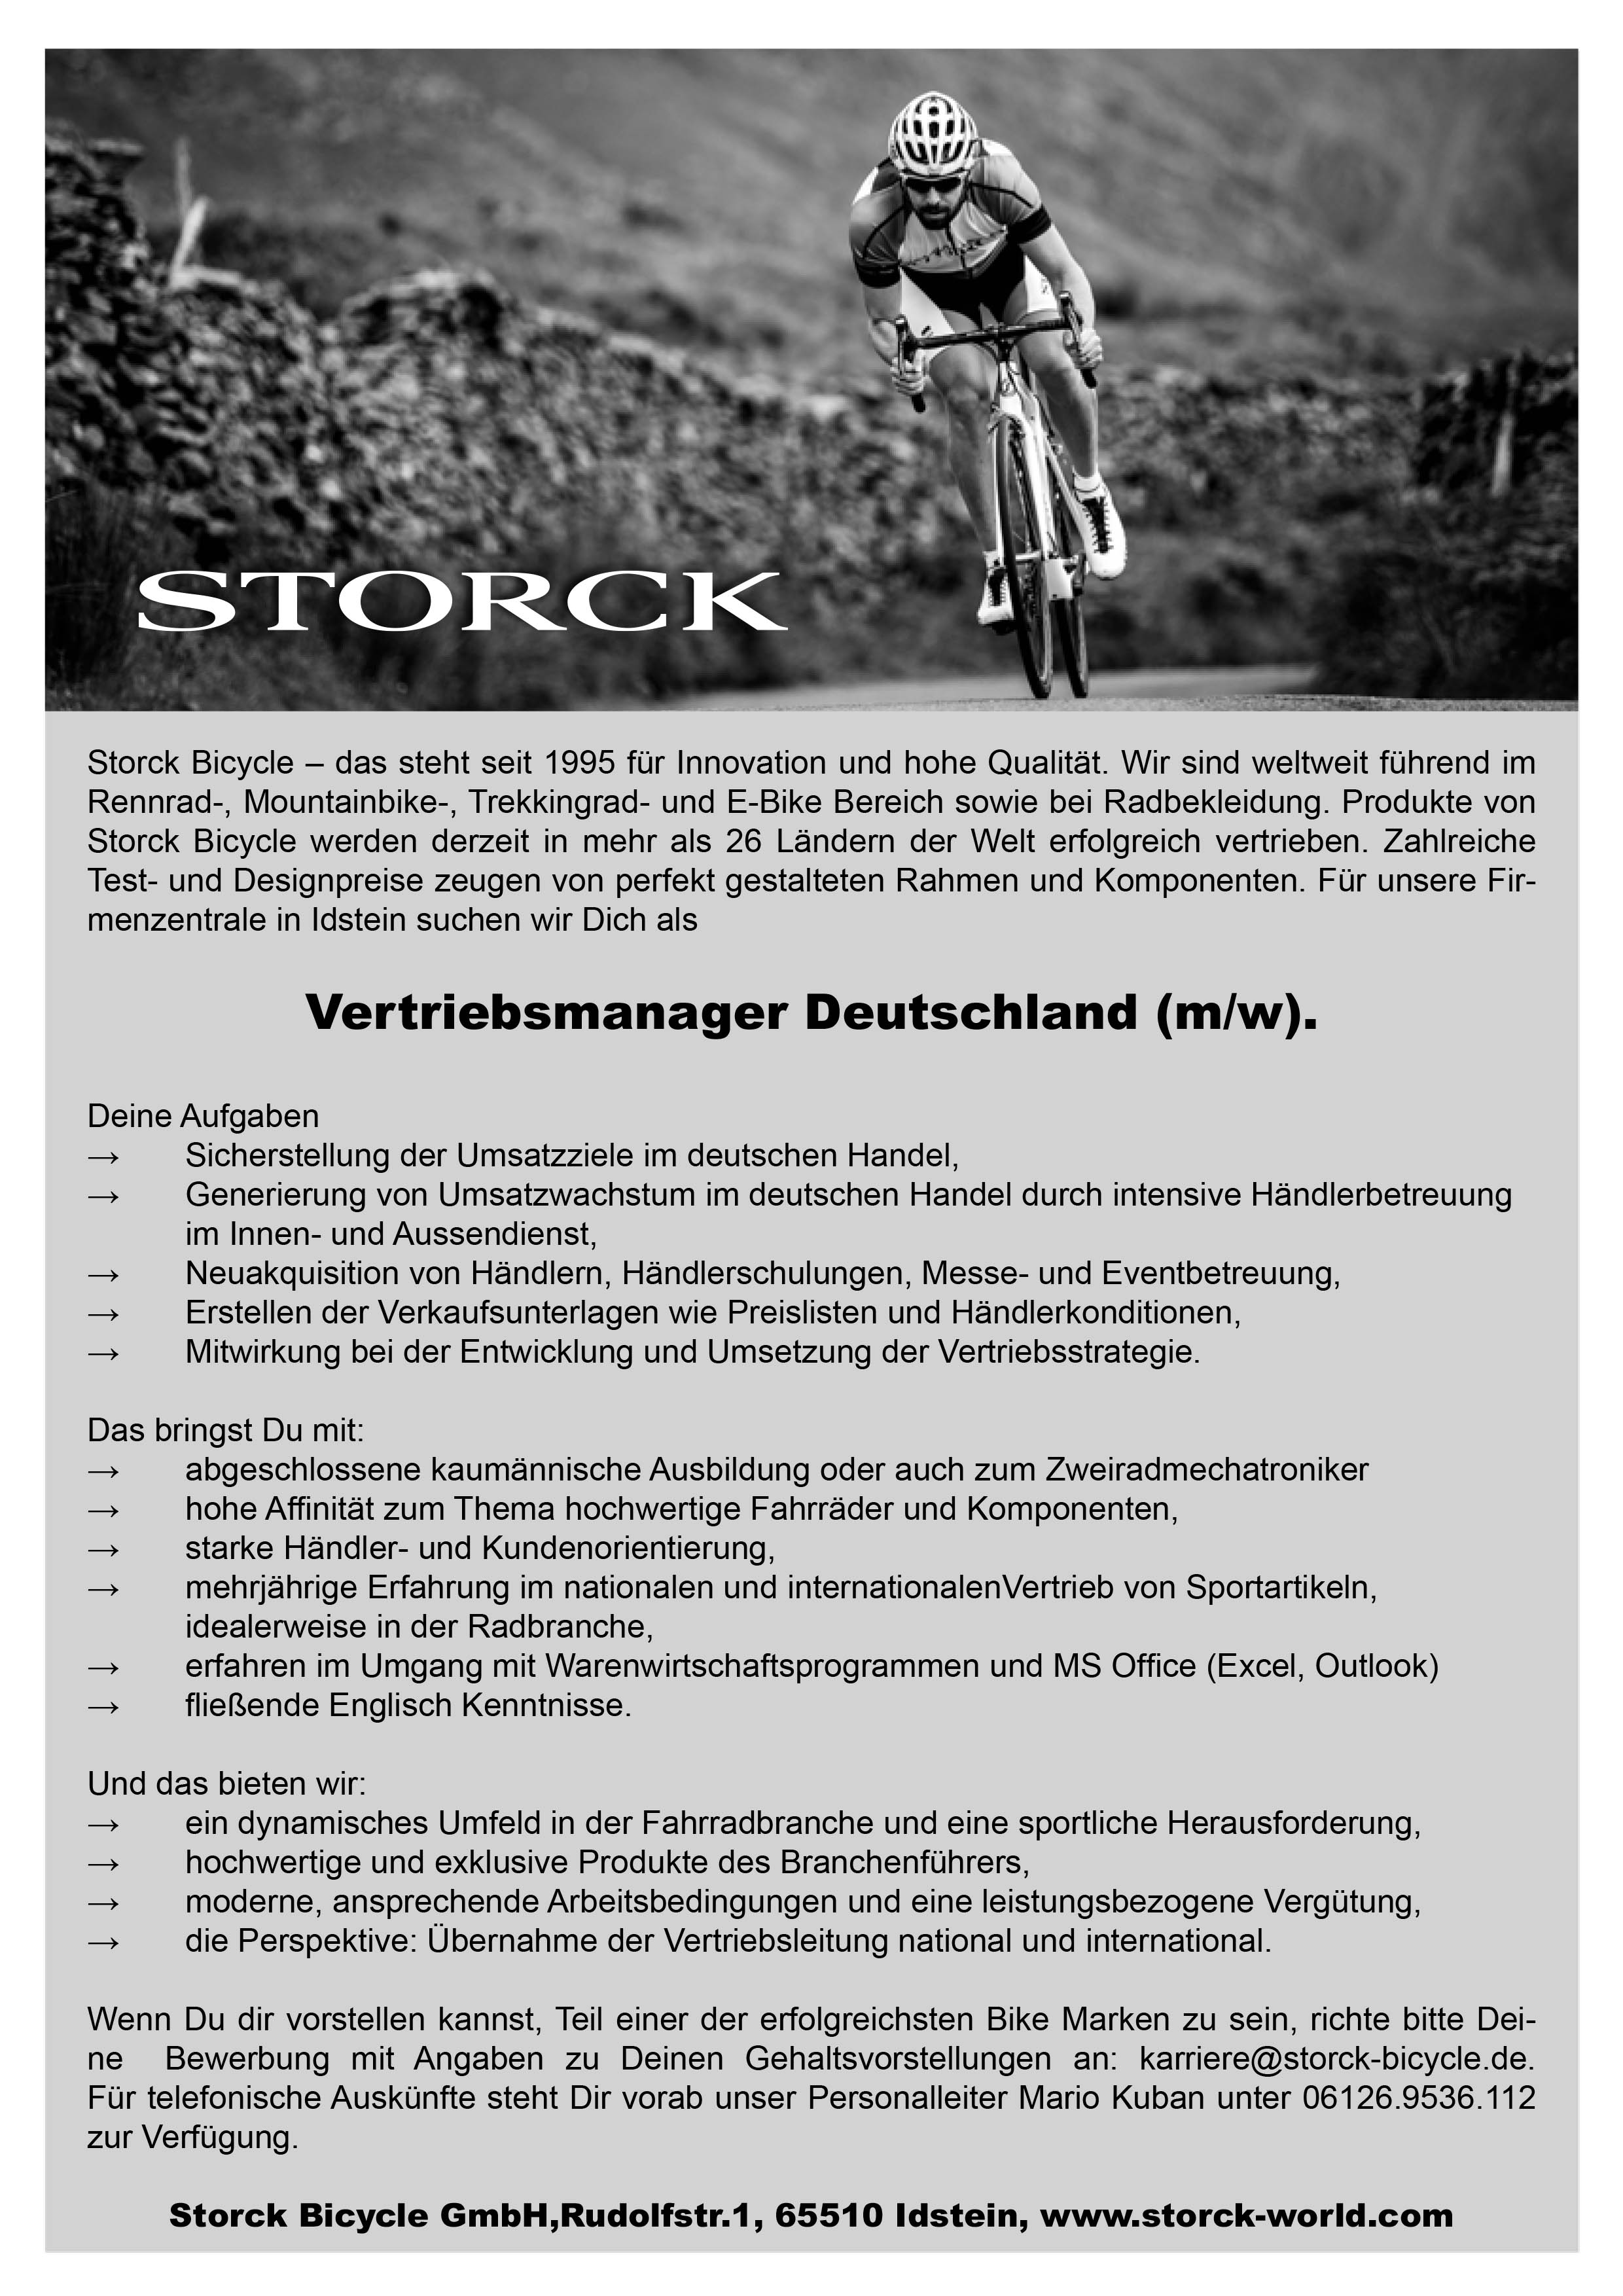 Vertriebsmanager (m/w)